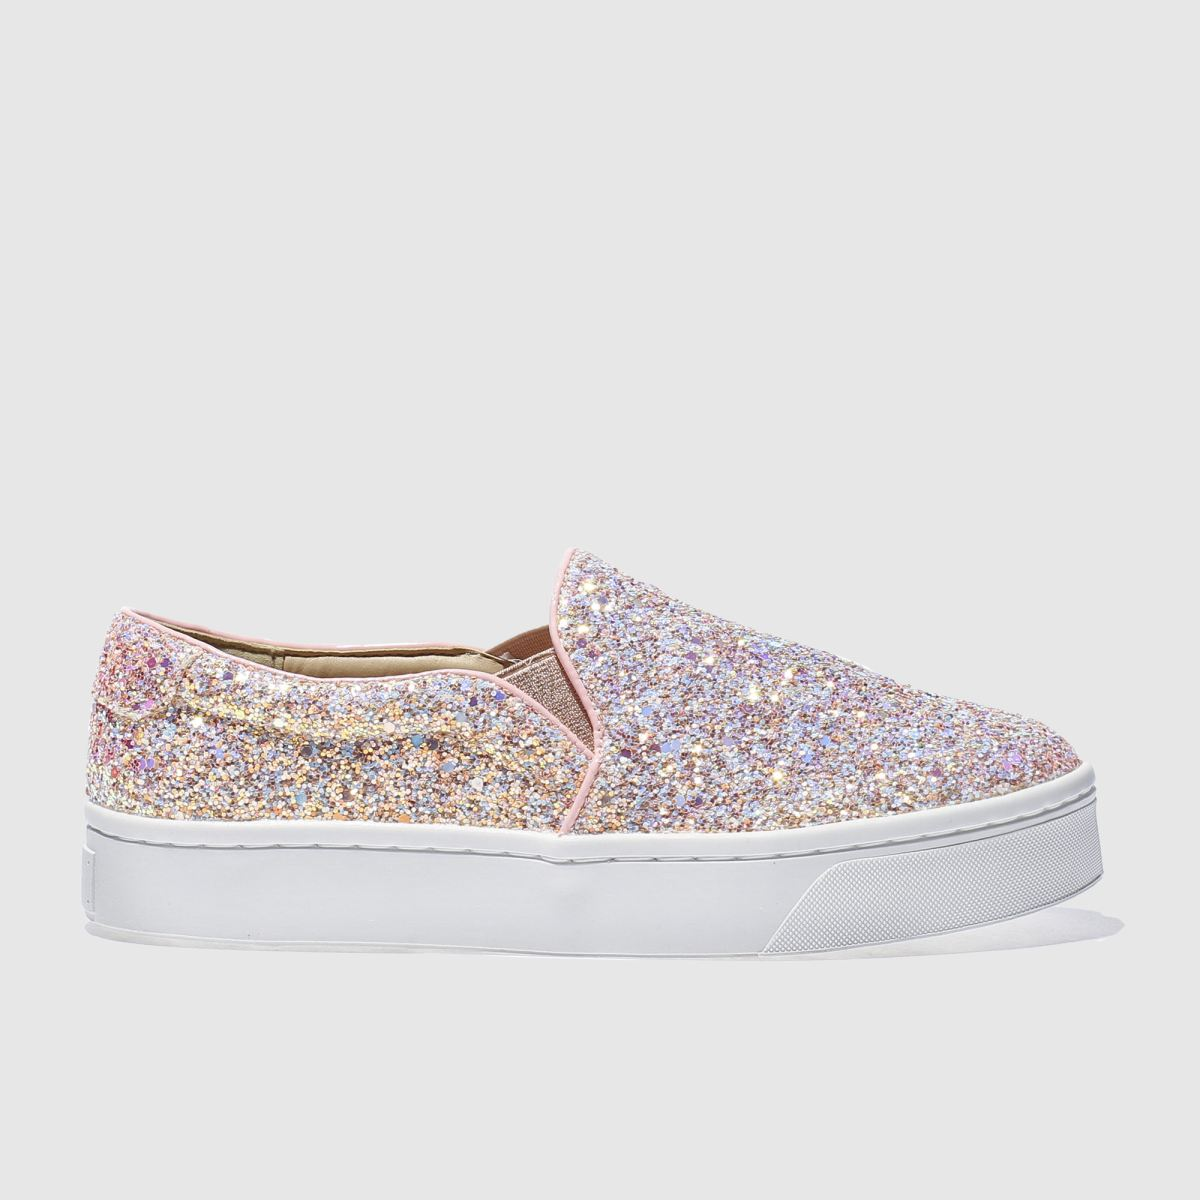 schuh Schuh Pale Pink Discotheque Ii Flat Shoes